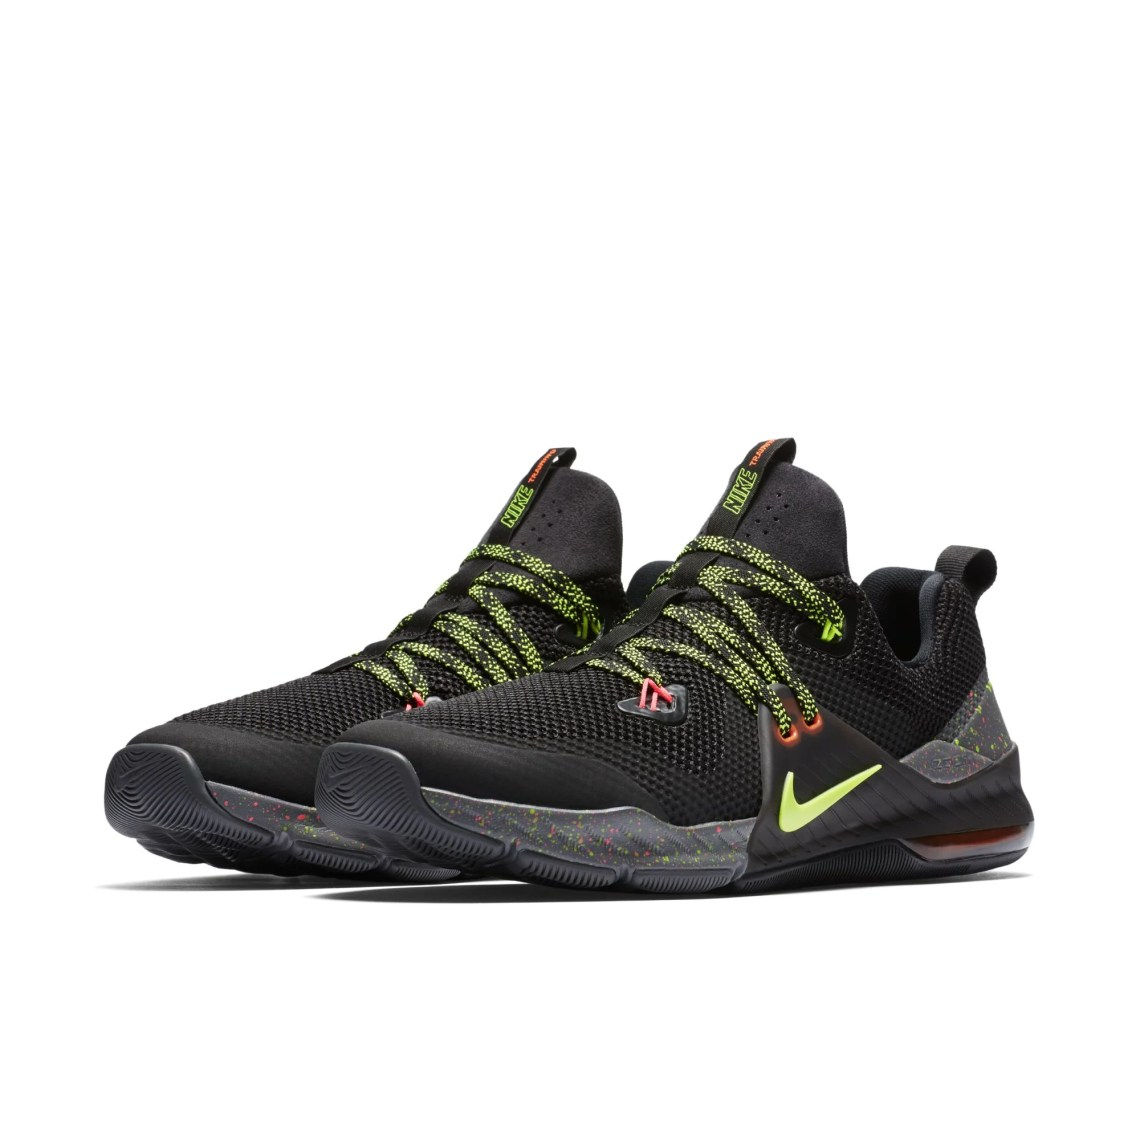 Nike Zoom Command Black/Volt